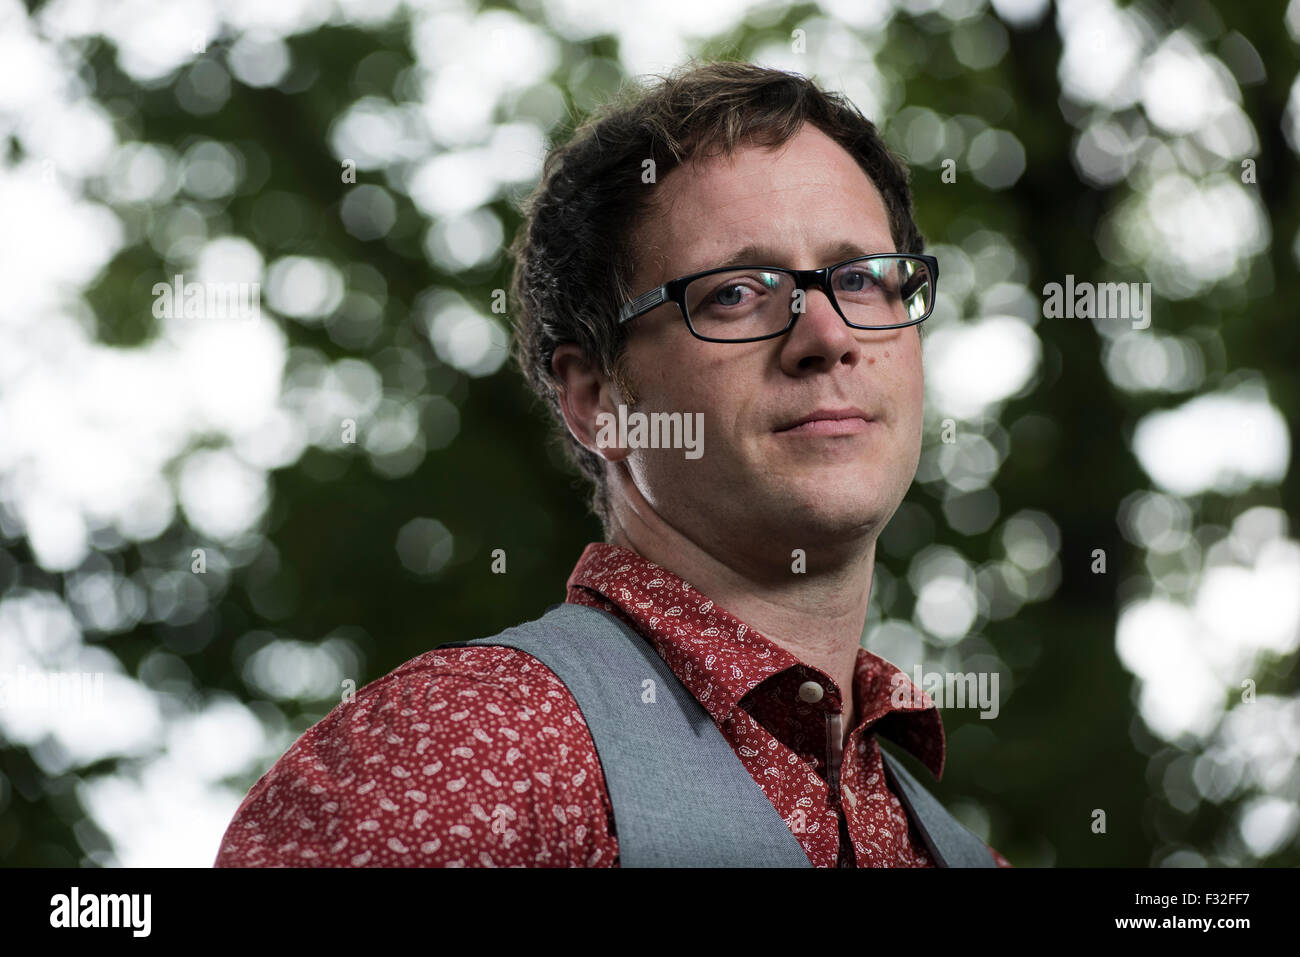 Writer, teacher and occasional filmmaker Simon Sylvester. - Stock Image